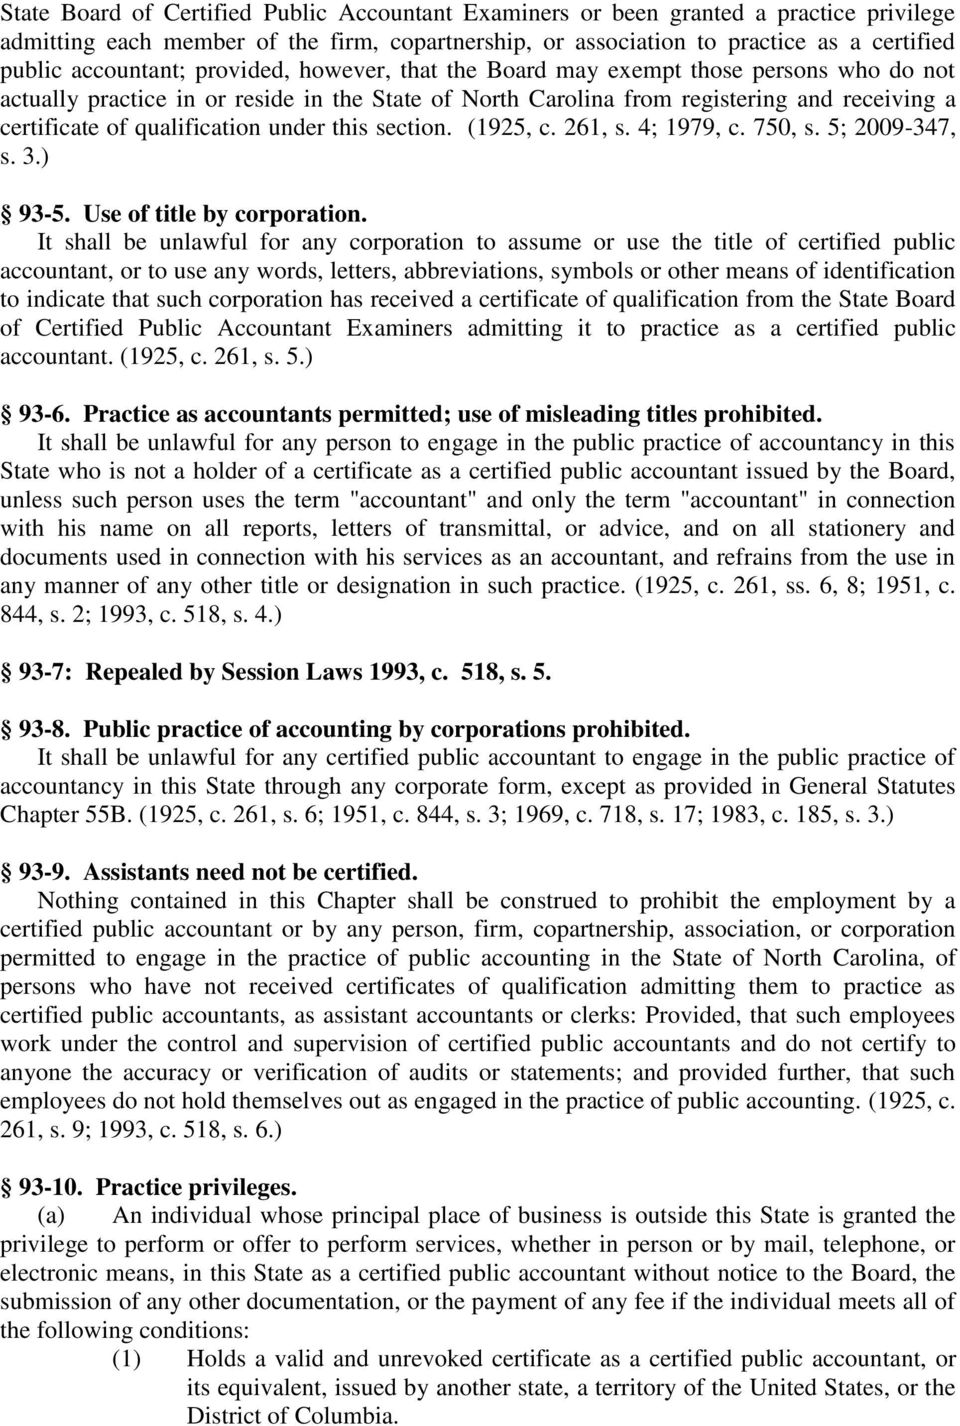 qualification under this section. (1925, c. 261, s. 4; 1979, c. 750, s. 5; 2009-347, s. 3.) 93-5. Use of title by corporation.